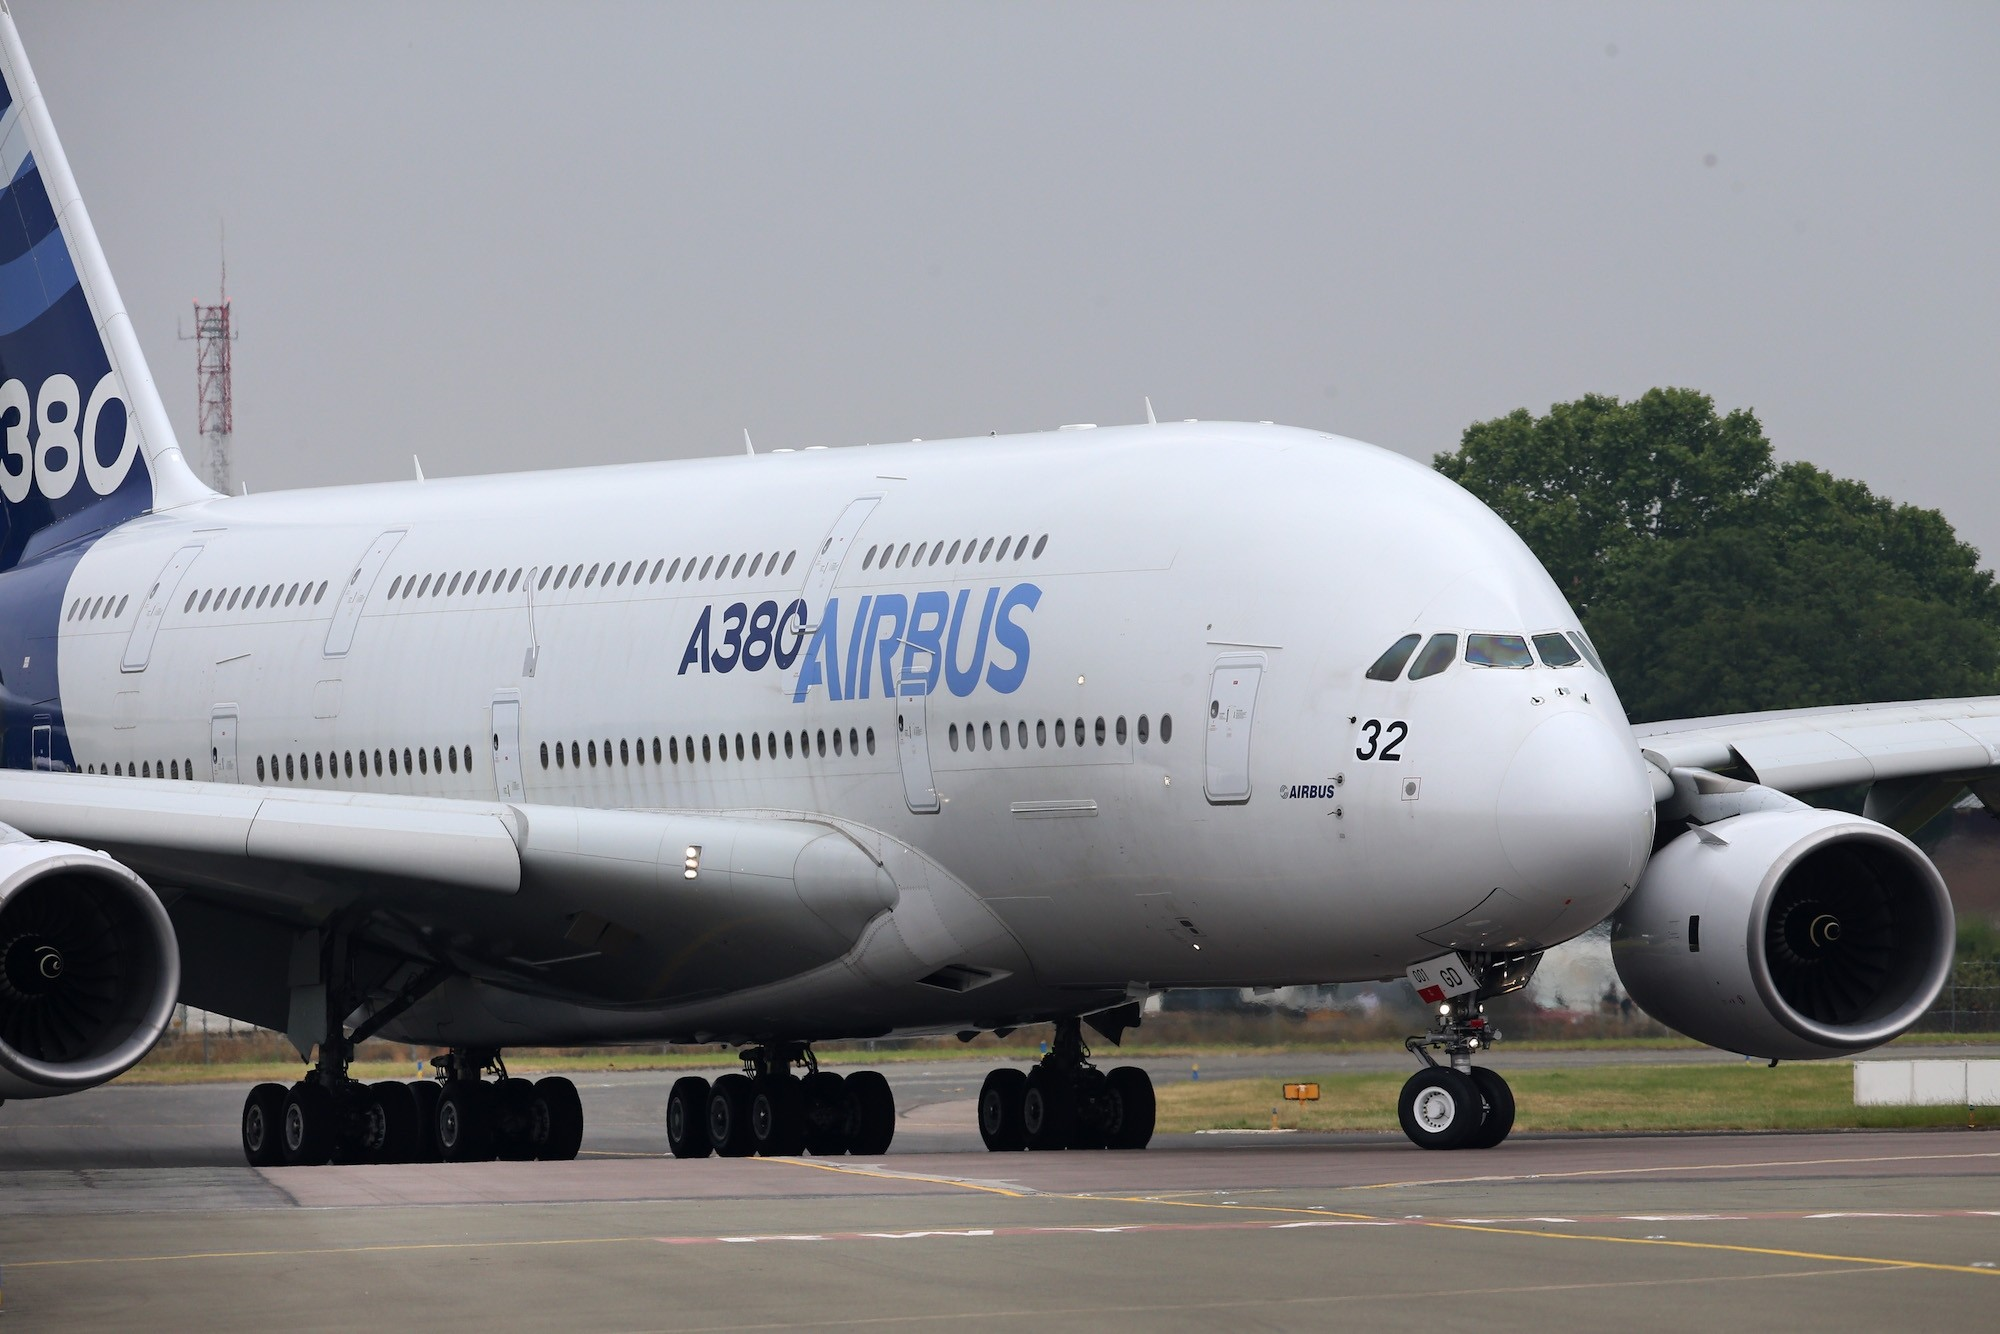 2000x1334 This is the exterior of the Airbus a380. The a380 has a wingspan of 262ft  (79.85meters) which is the largest allowed (due to airport size  restrictions) for ...